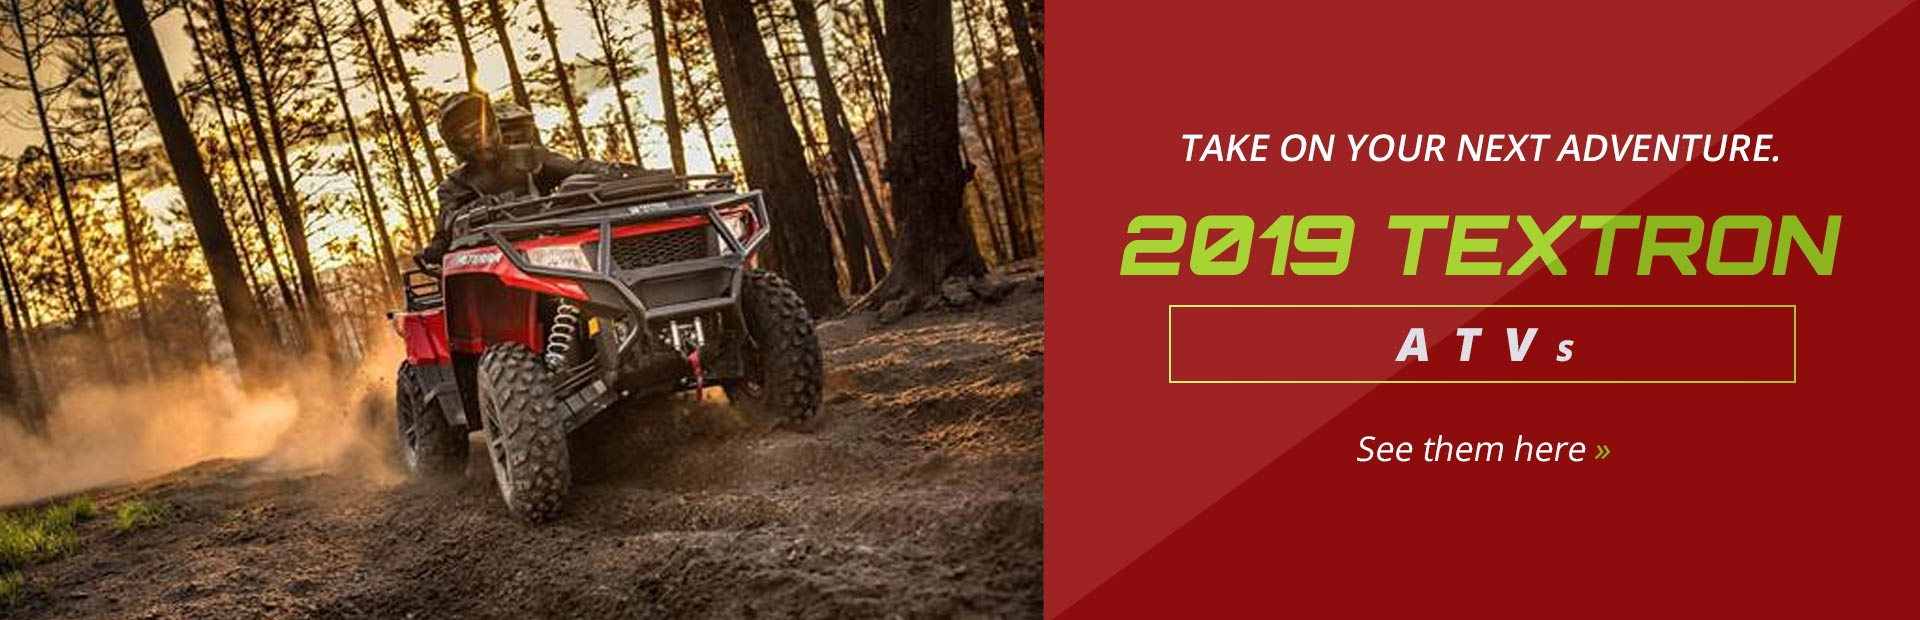 2019 Textron ATVs: Click here to view the models.